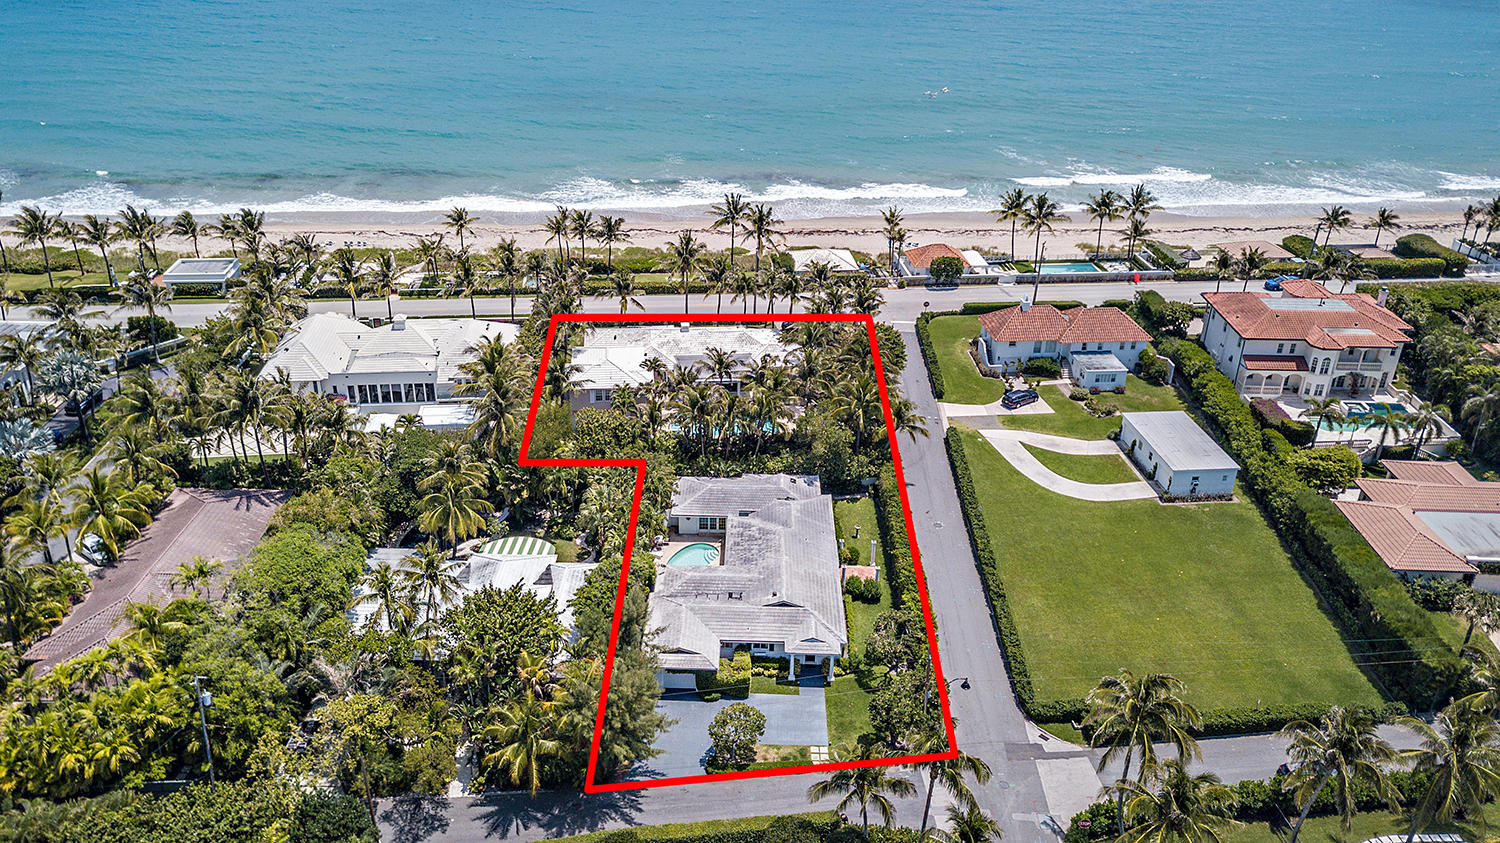 Rare, oceanfront double-lot in the North End. The listing includes adjacent property 1287 N. Ocean Way. With two coveted North End properties, enjoy a family compound with main house and guest house, or with 28,000+/- SF of combined land, tear down to build a 10,000+/- SF oceanfront estate. Set against N. Ocean Way and N. Ocean Blvd., enjoy the privacy and convenience of a back alley for your custom-built estate. The Island's best beach is at your front door, and beach access includes a private entrance and entertaining space for Kenlyn Road residents only.